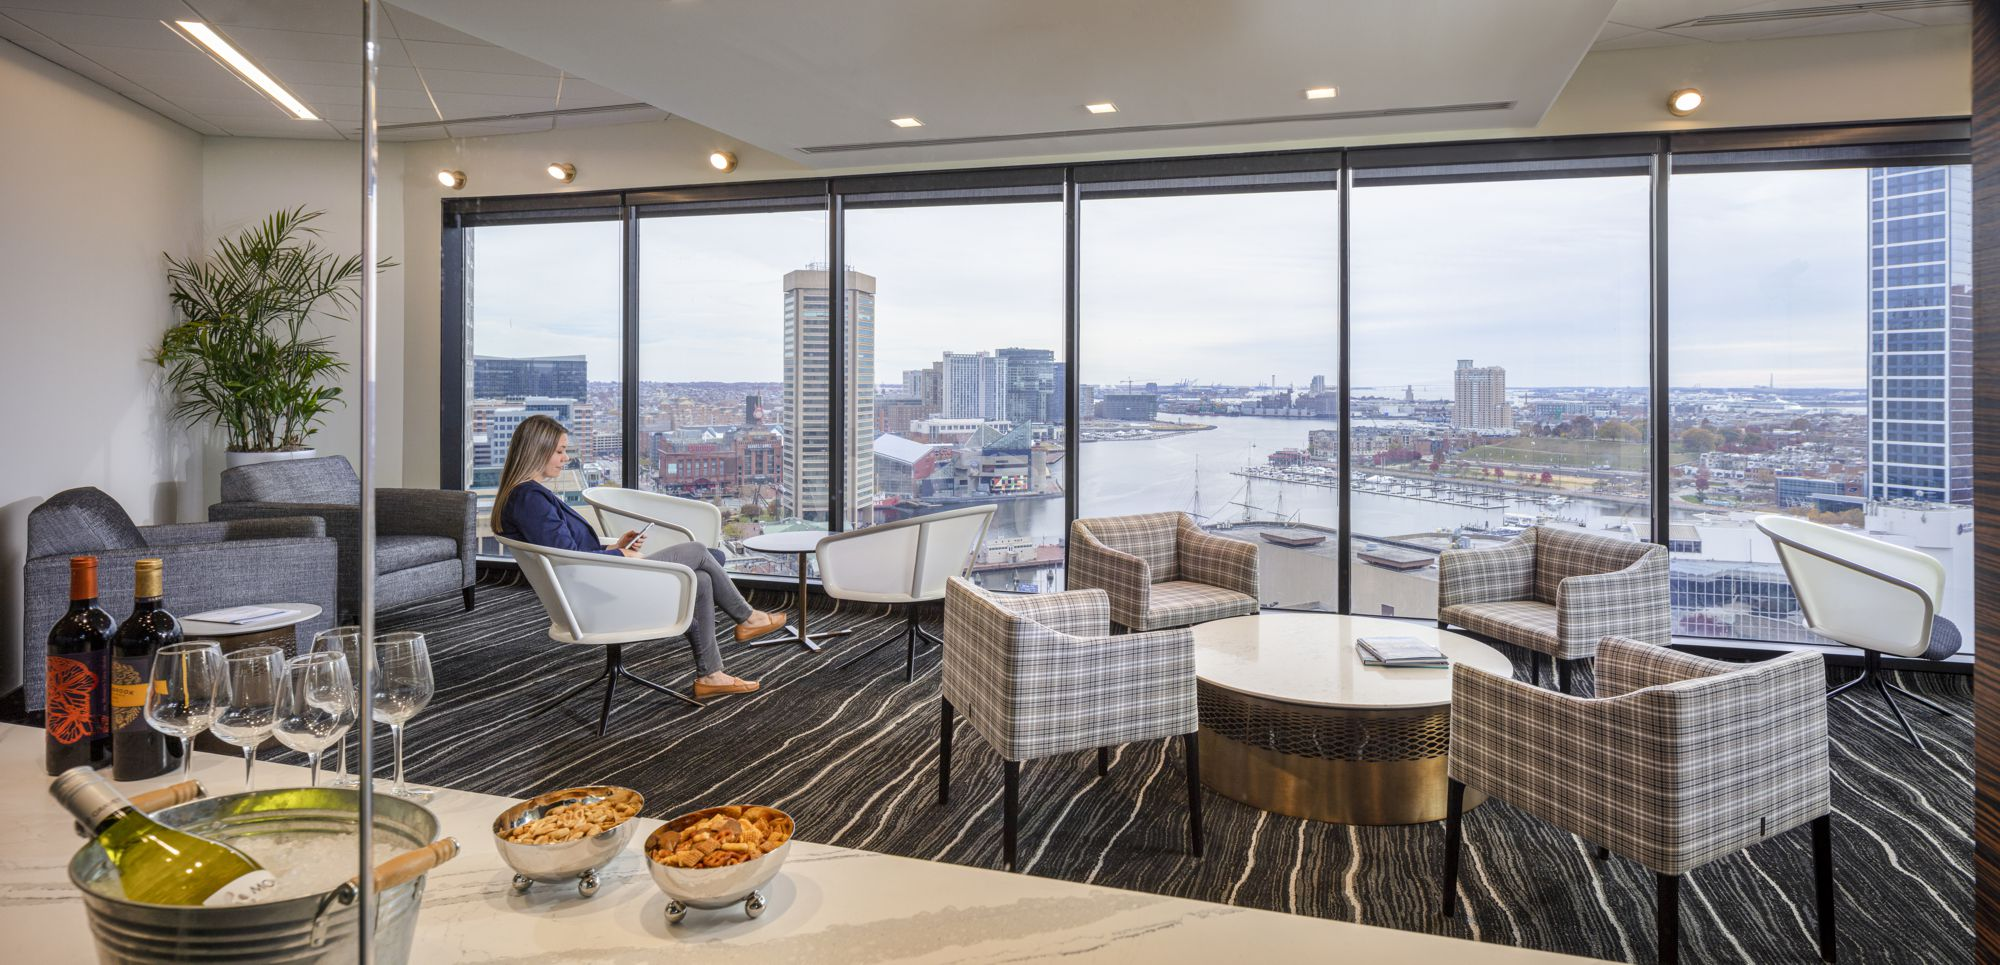 After a long day in the conference center, clients can unwind in the club room and enjoy the harbor.